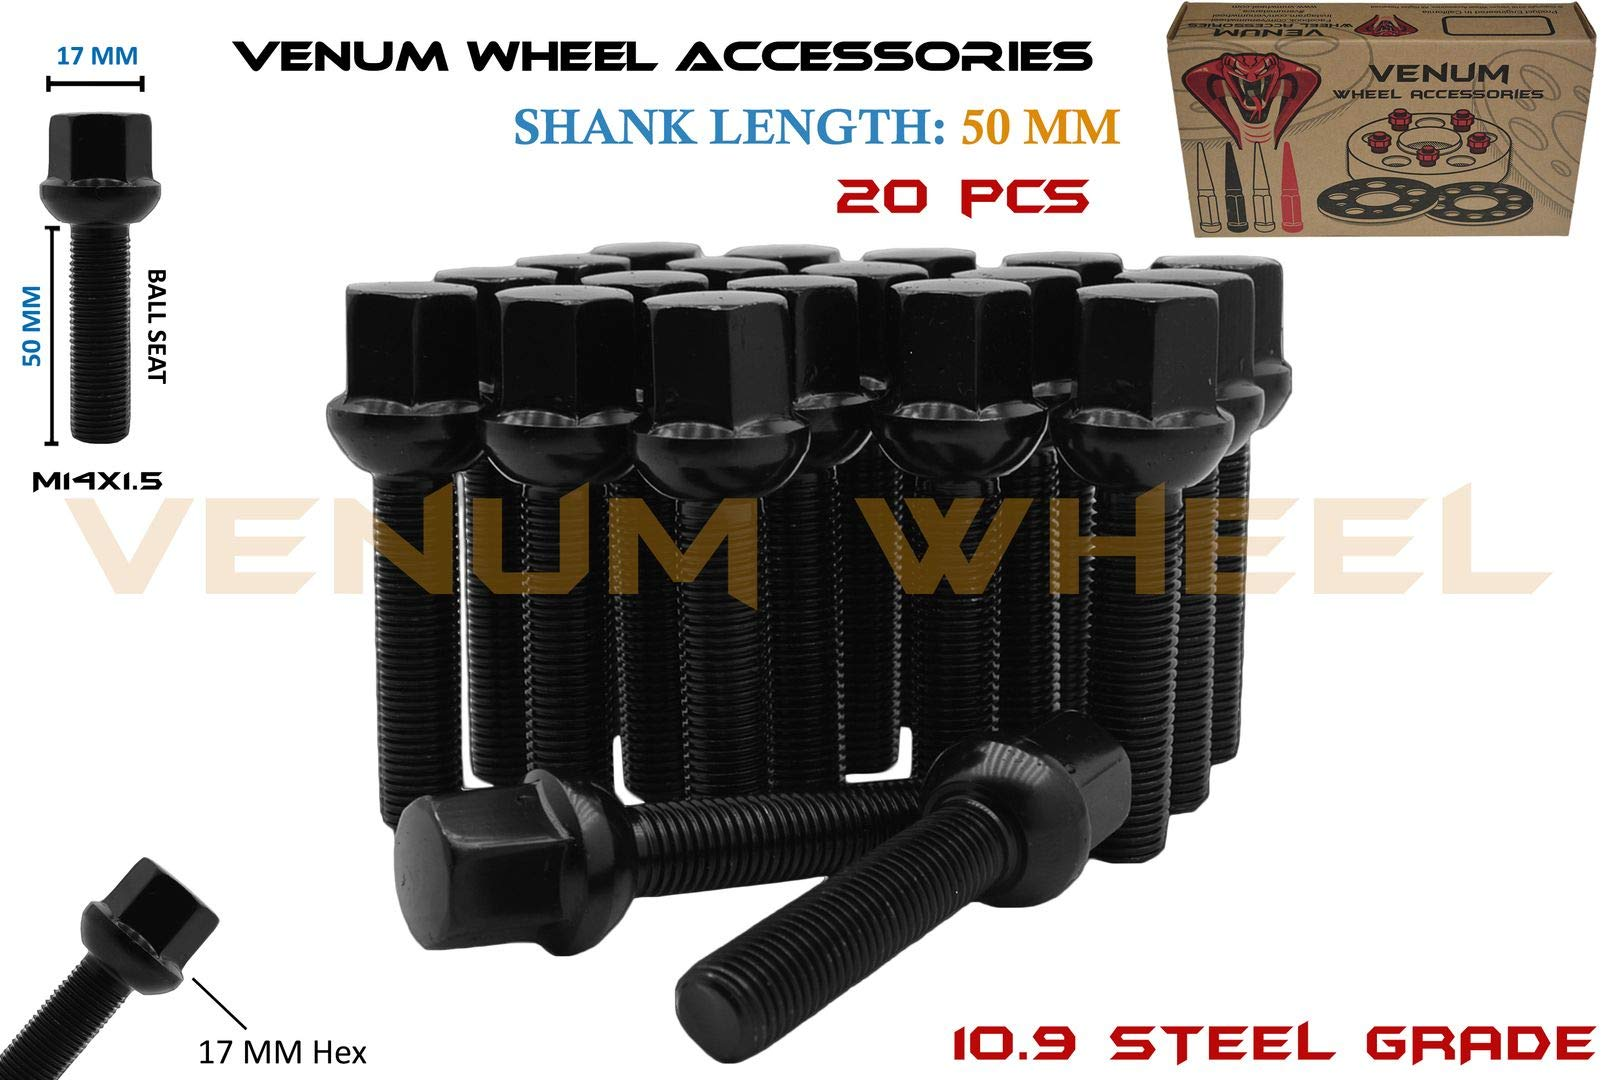 Venum wheel accessories 20Pc Black Powder Coated M14x1.5 Ball Seat Lug Bolts 50 mm Extended Shank Length Radius Works with Volkswagen Audi Mercedes Benz Porsche Vehicle W/Factory Wheels by Venum wheel accessories